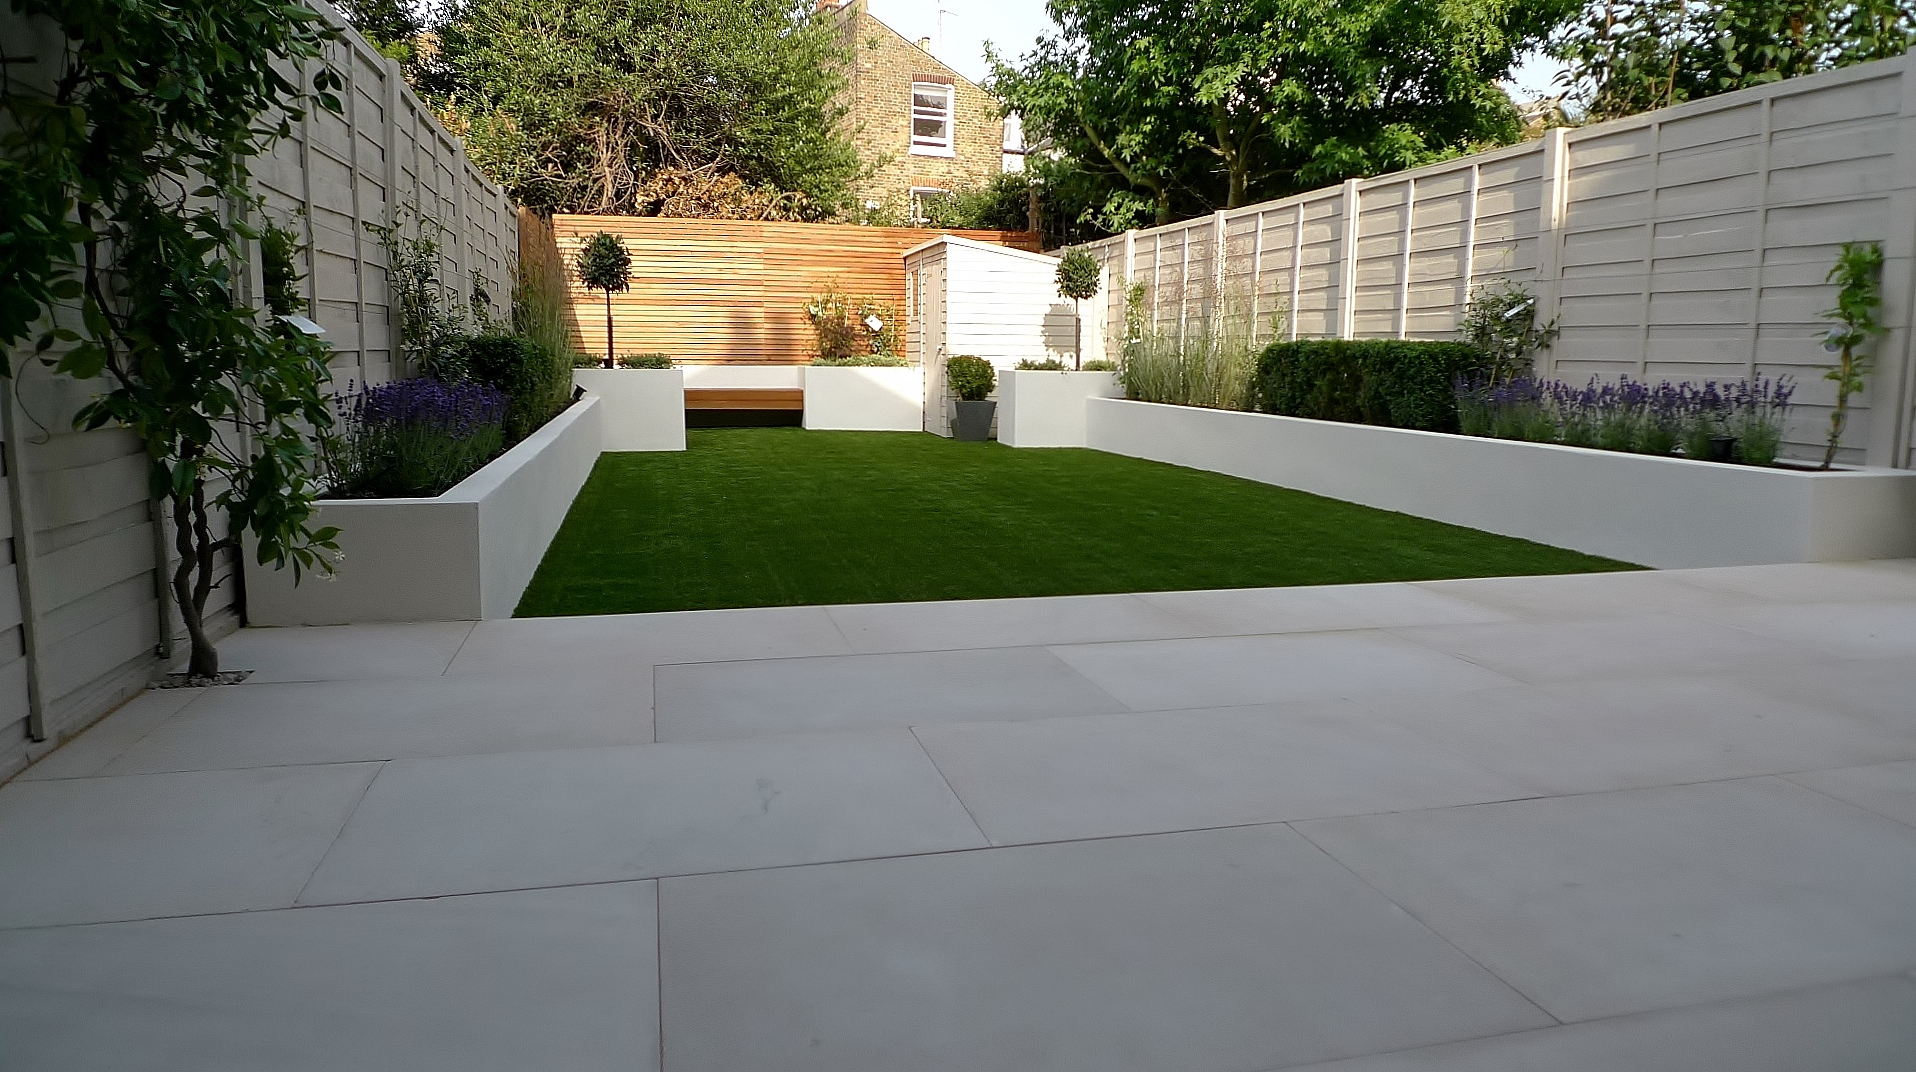 Modern balham garden design london garden design for Contemporary garden design ideas